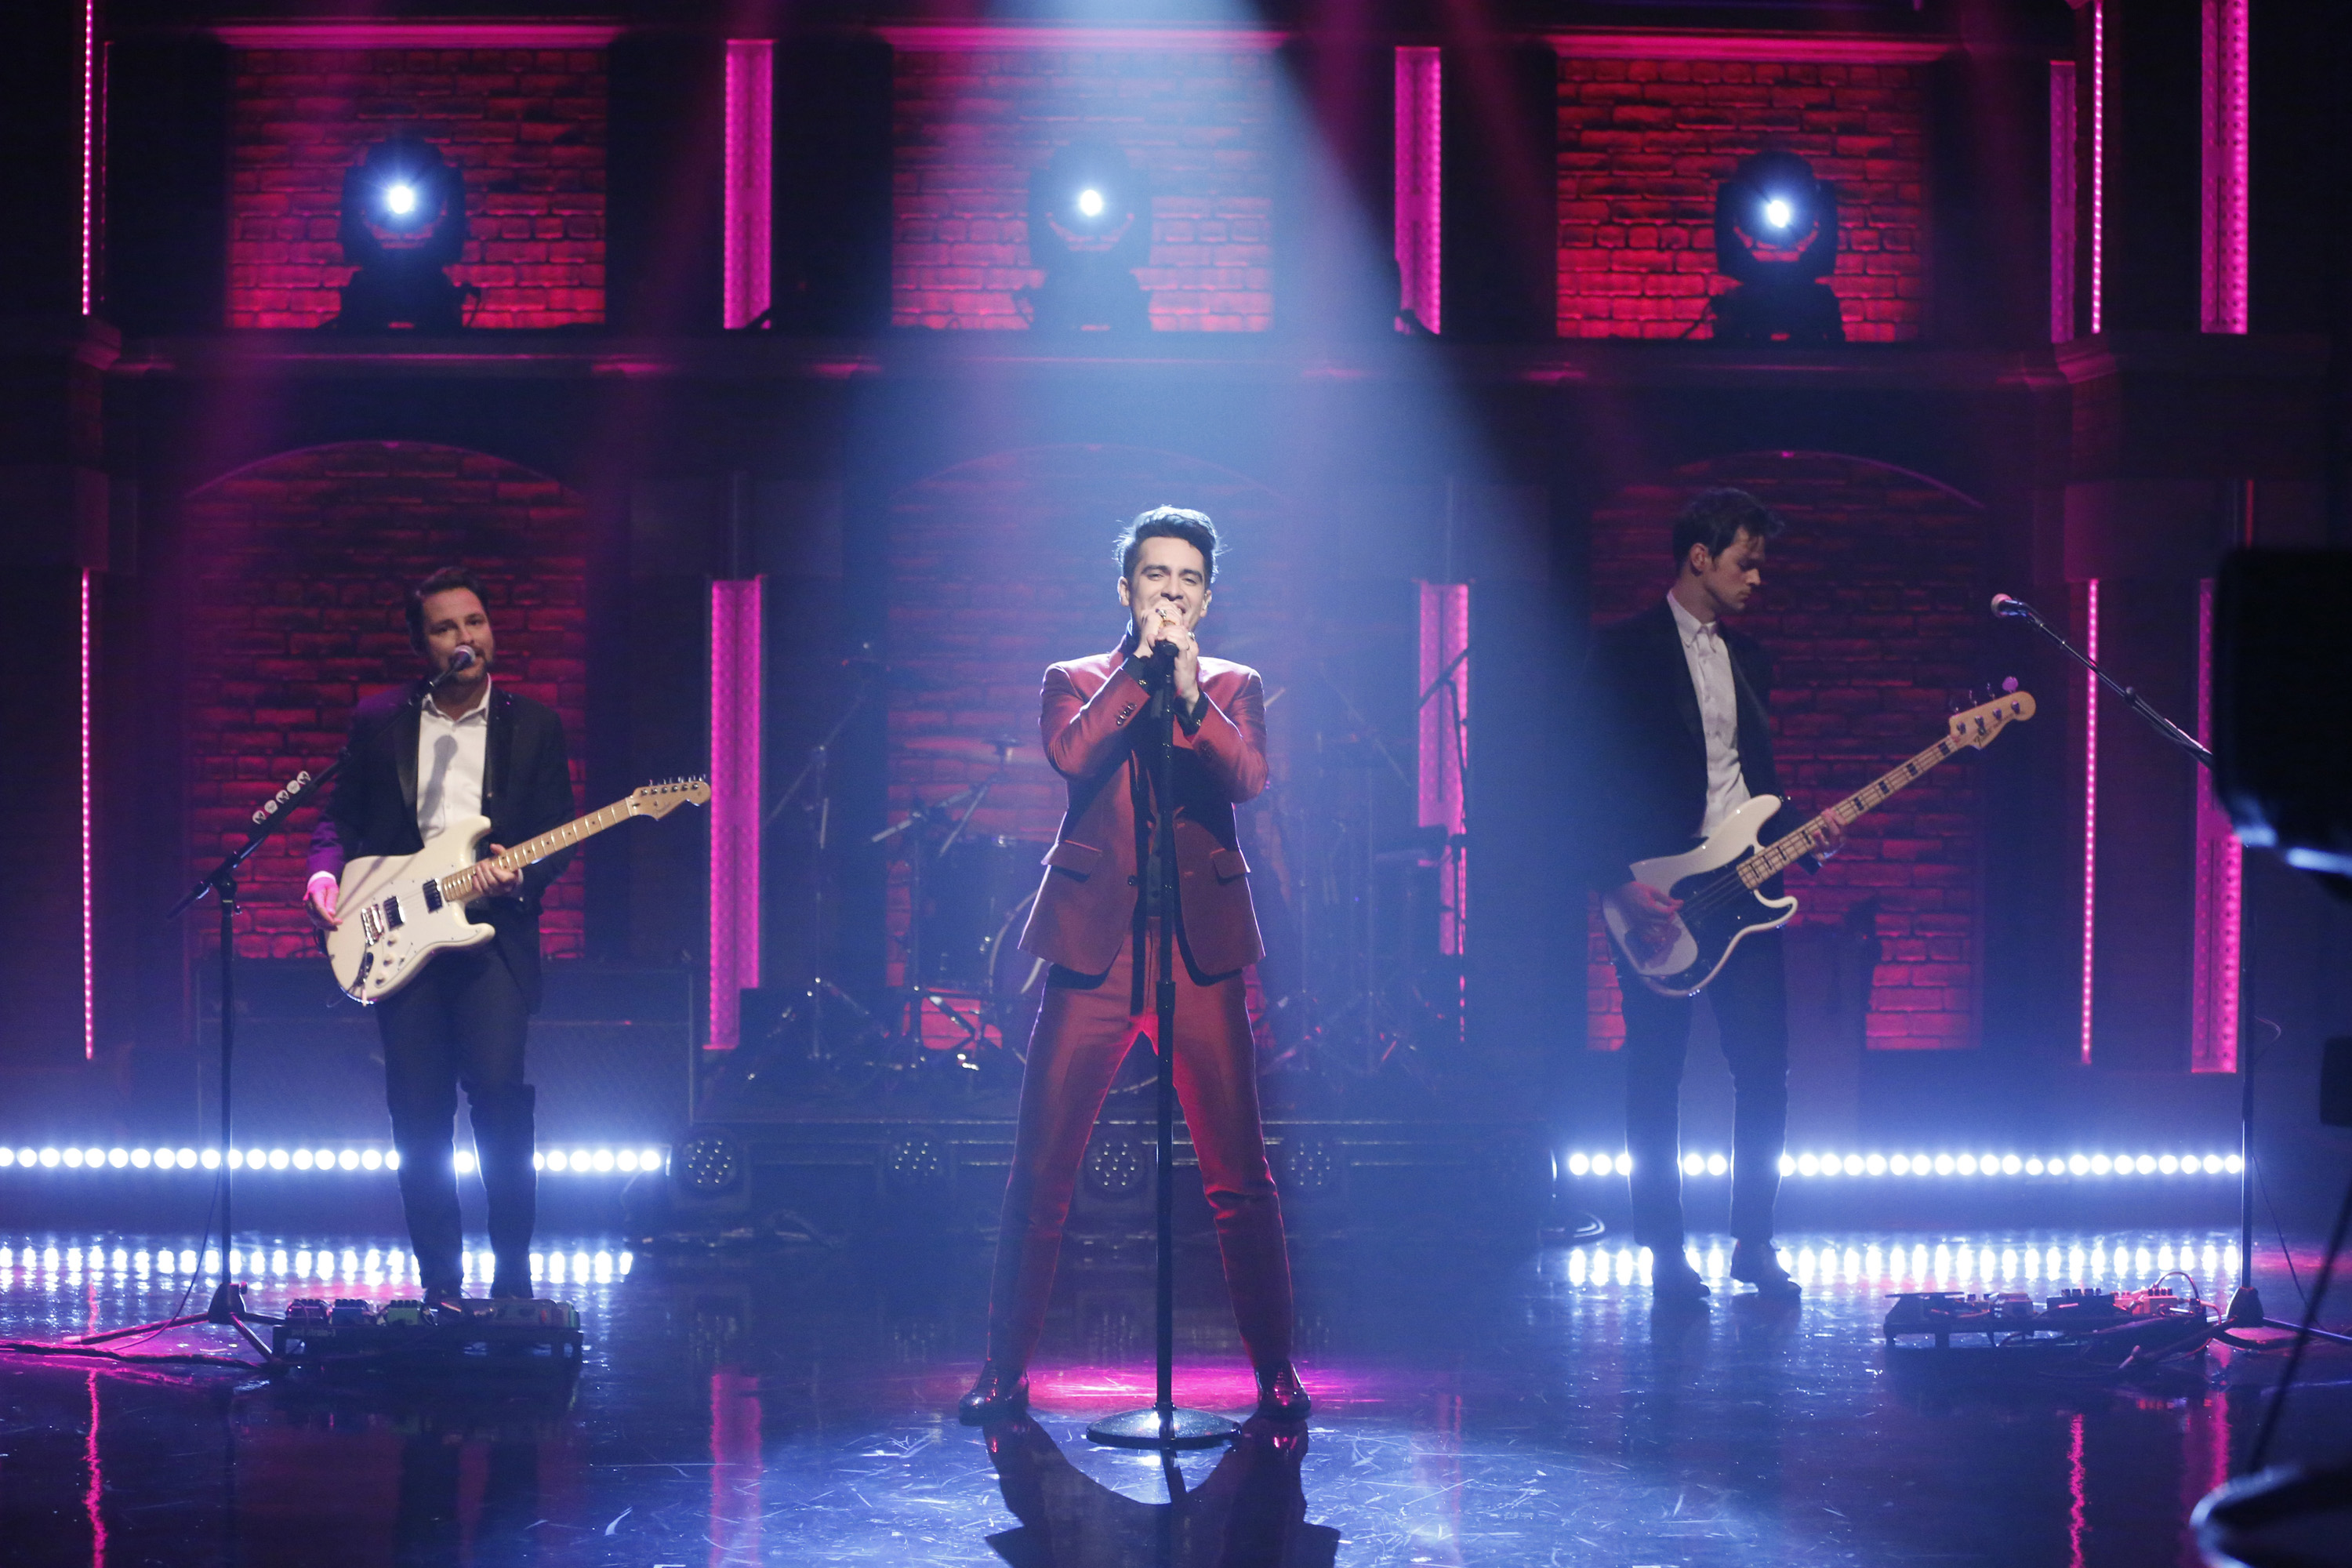 Panic! at the Disco Announce New Album 'Death of a Bachelor'